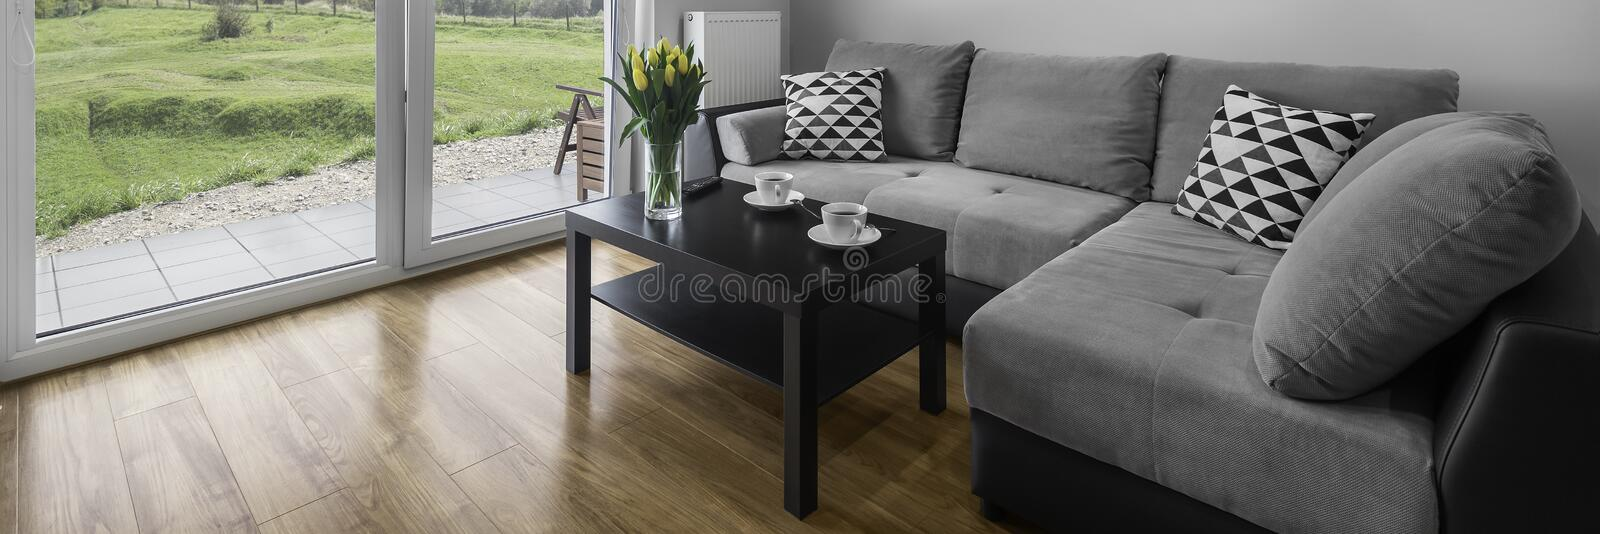 Comfortable grey couch. Panoramic view of comfortable grey couch in modern living room royalty free stock photography